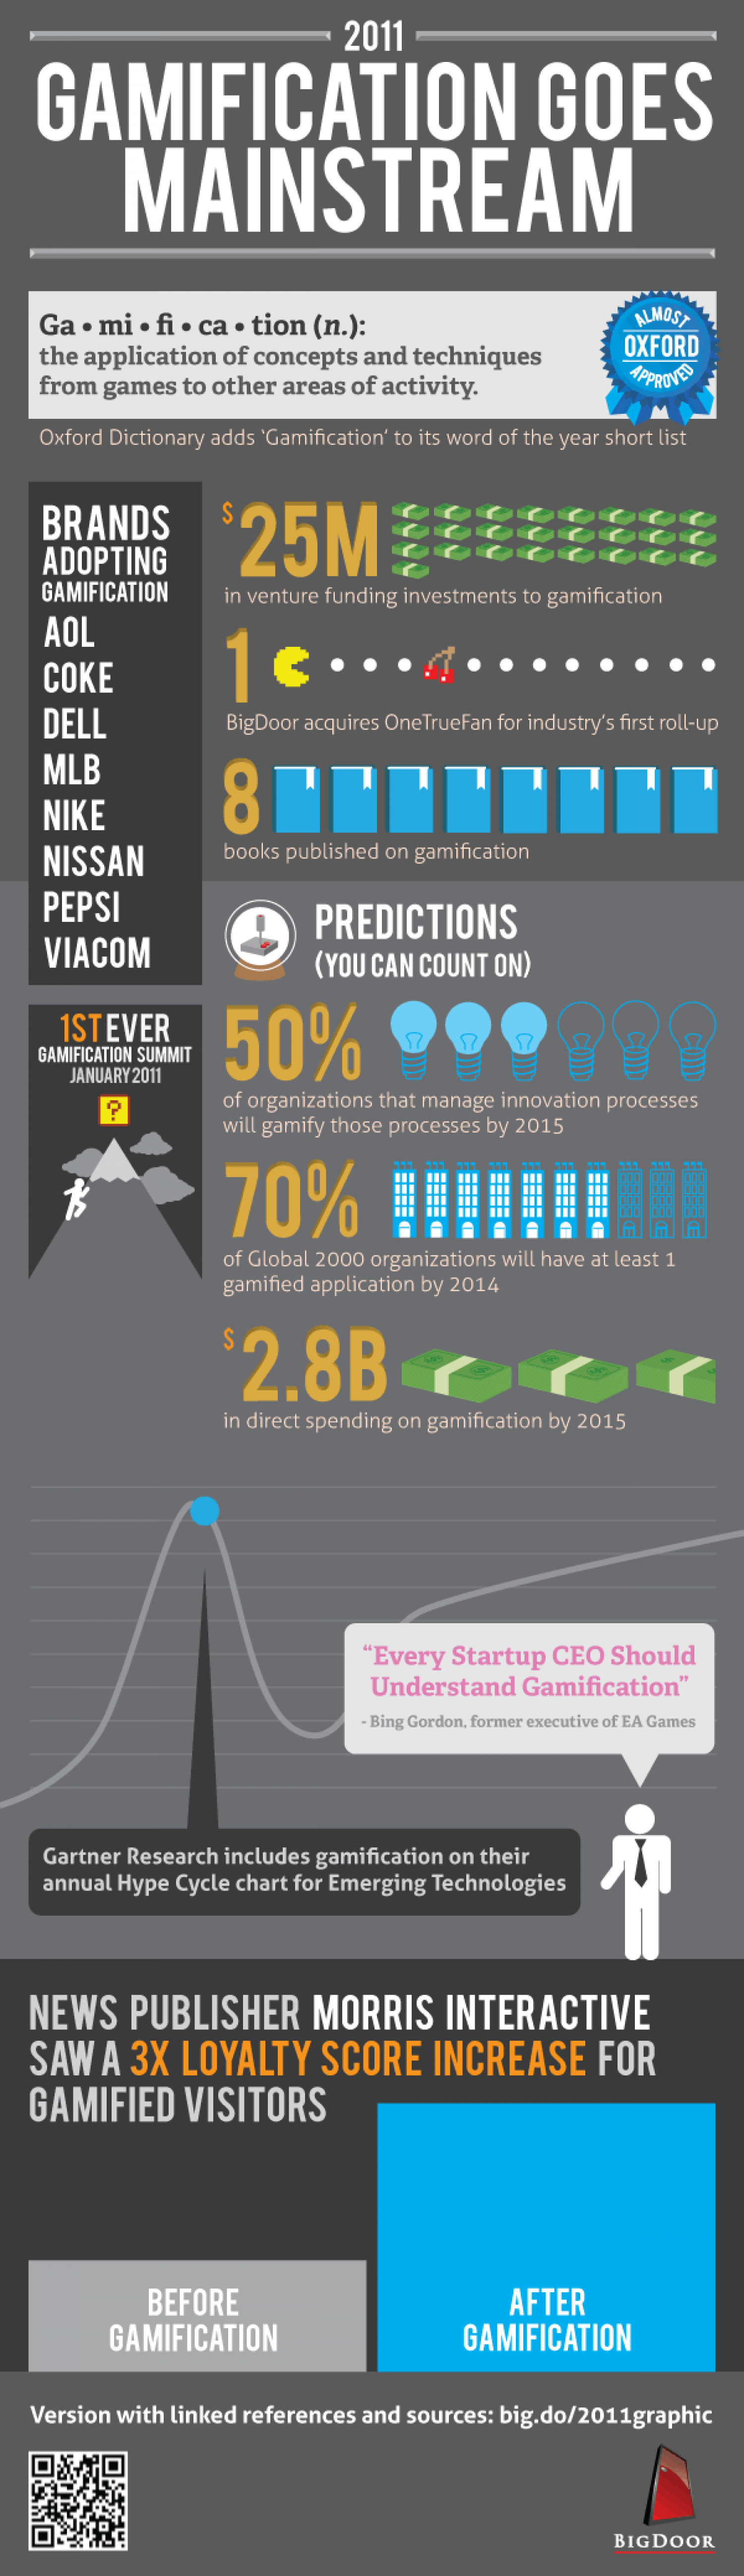 Gamification Goes Mainstream Infographic